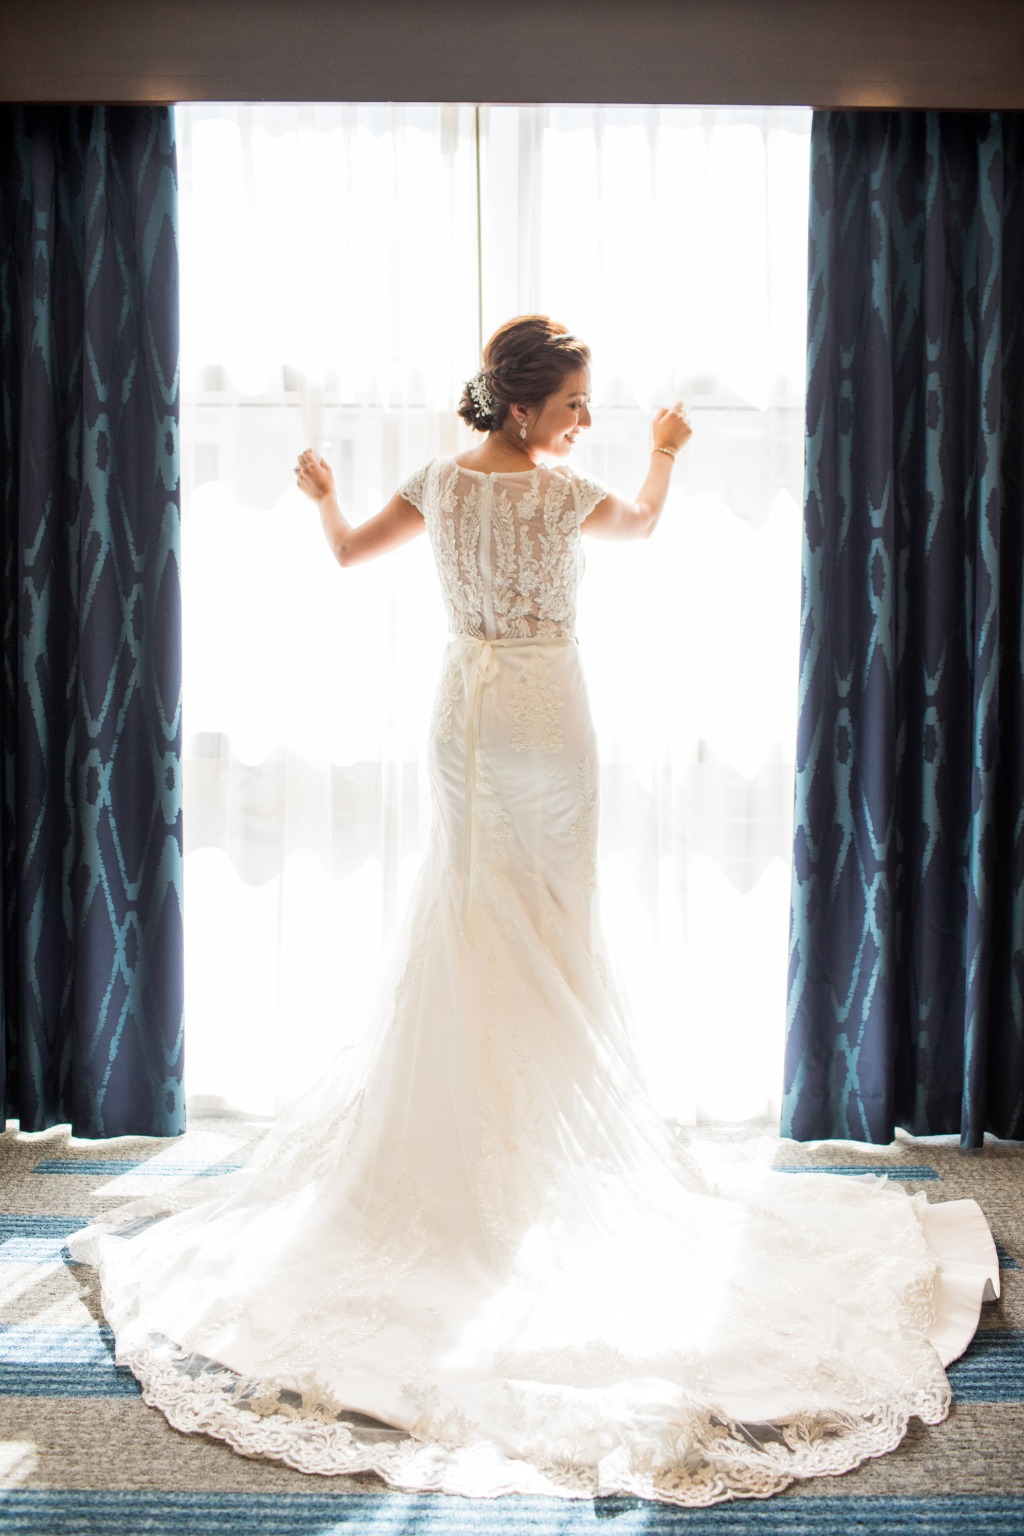 Our bride is ready for her big day! How gorgeous and elegant is this shot by Nathan Nowack Photography?